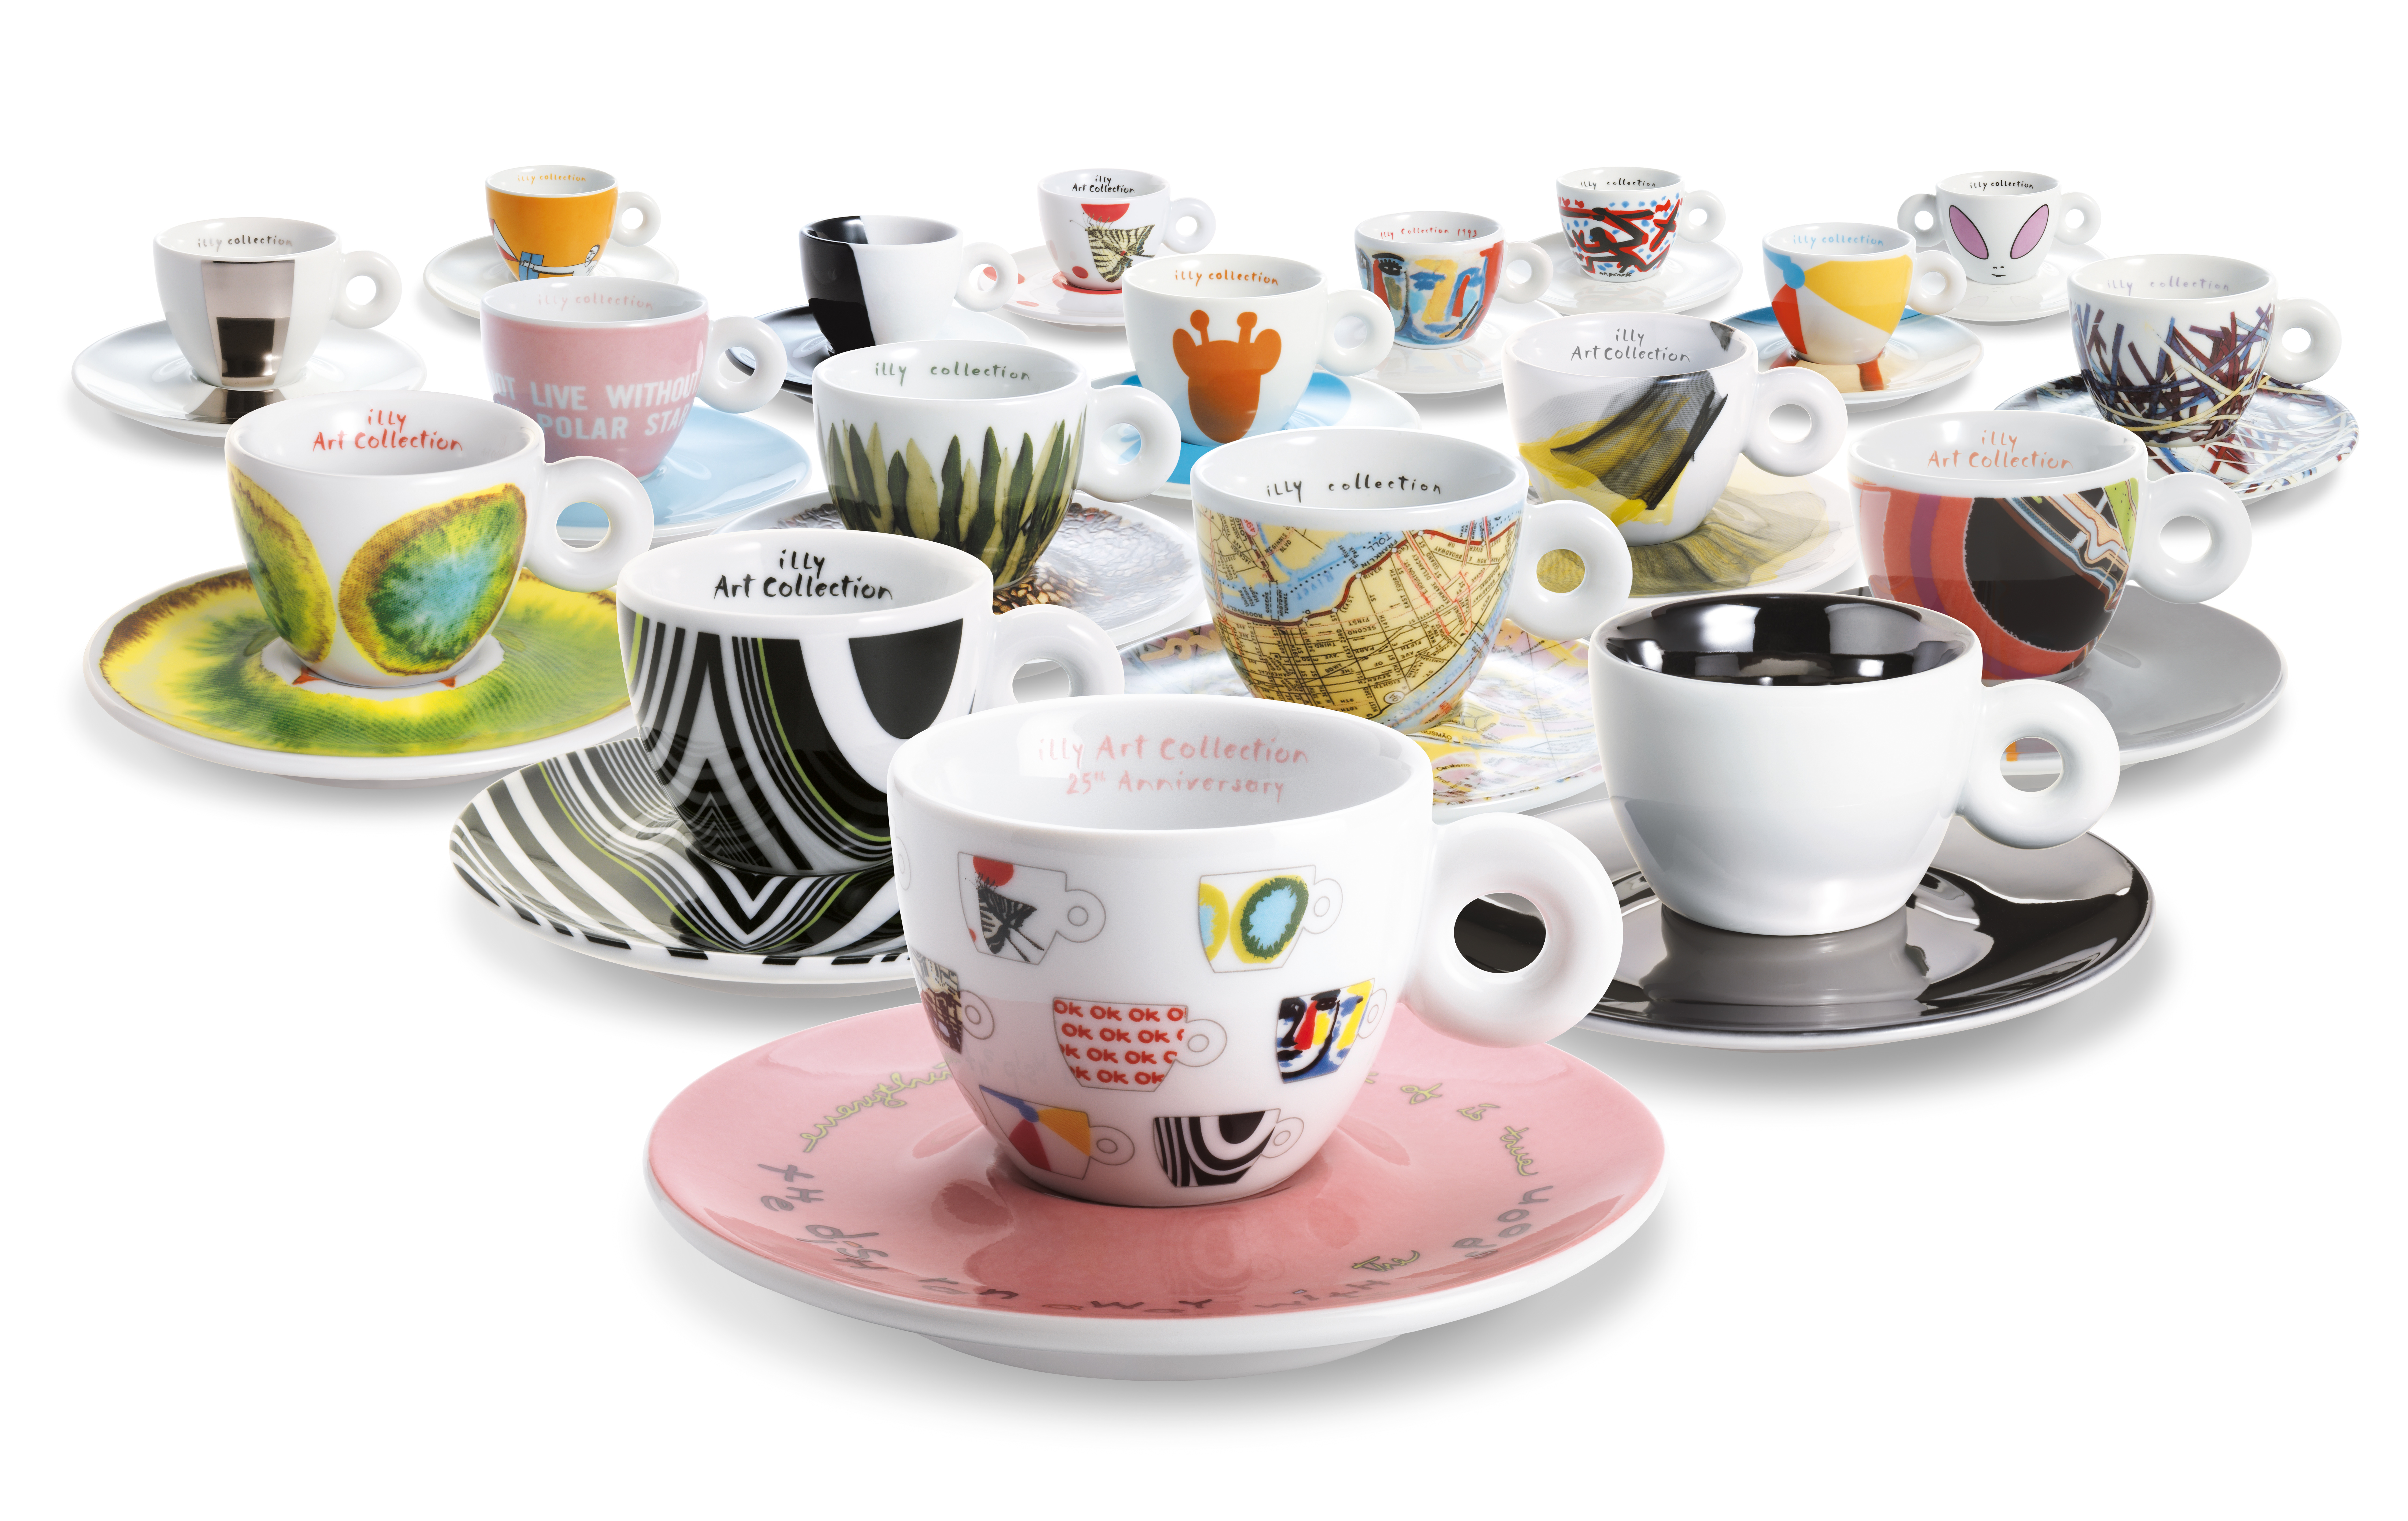 Twenty Years Ago Illy Considered How An Everyday Object Like A Coffee Cup Could